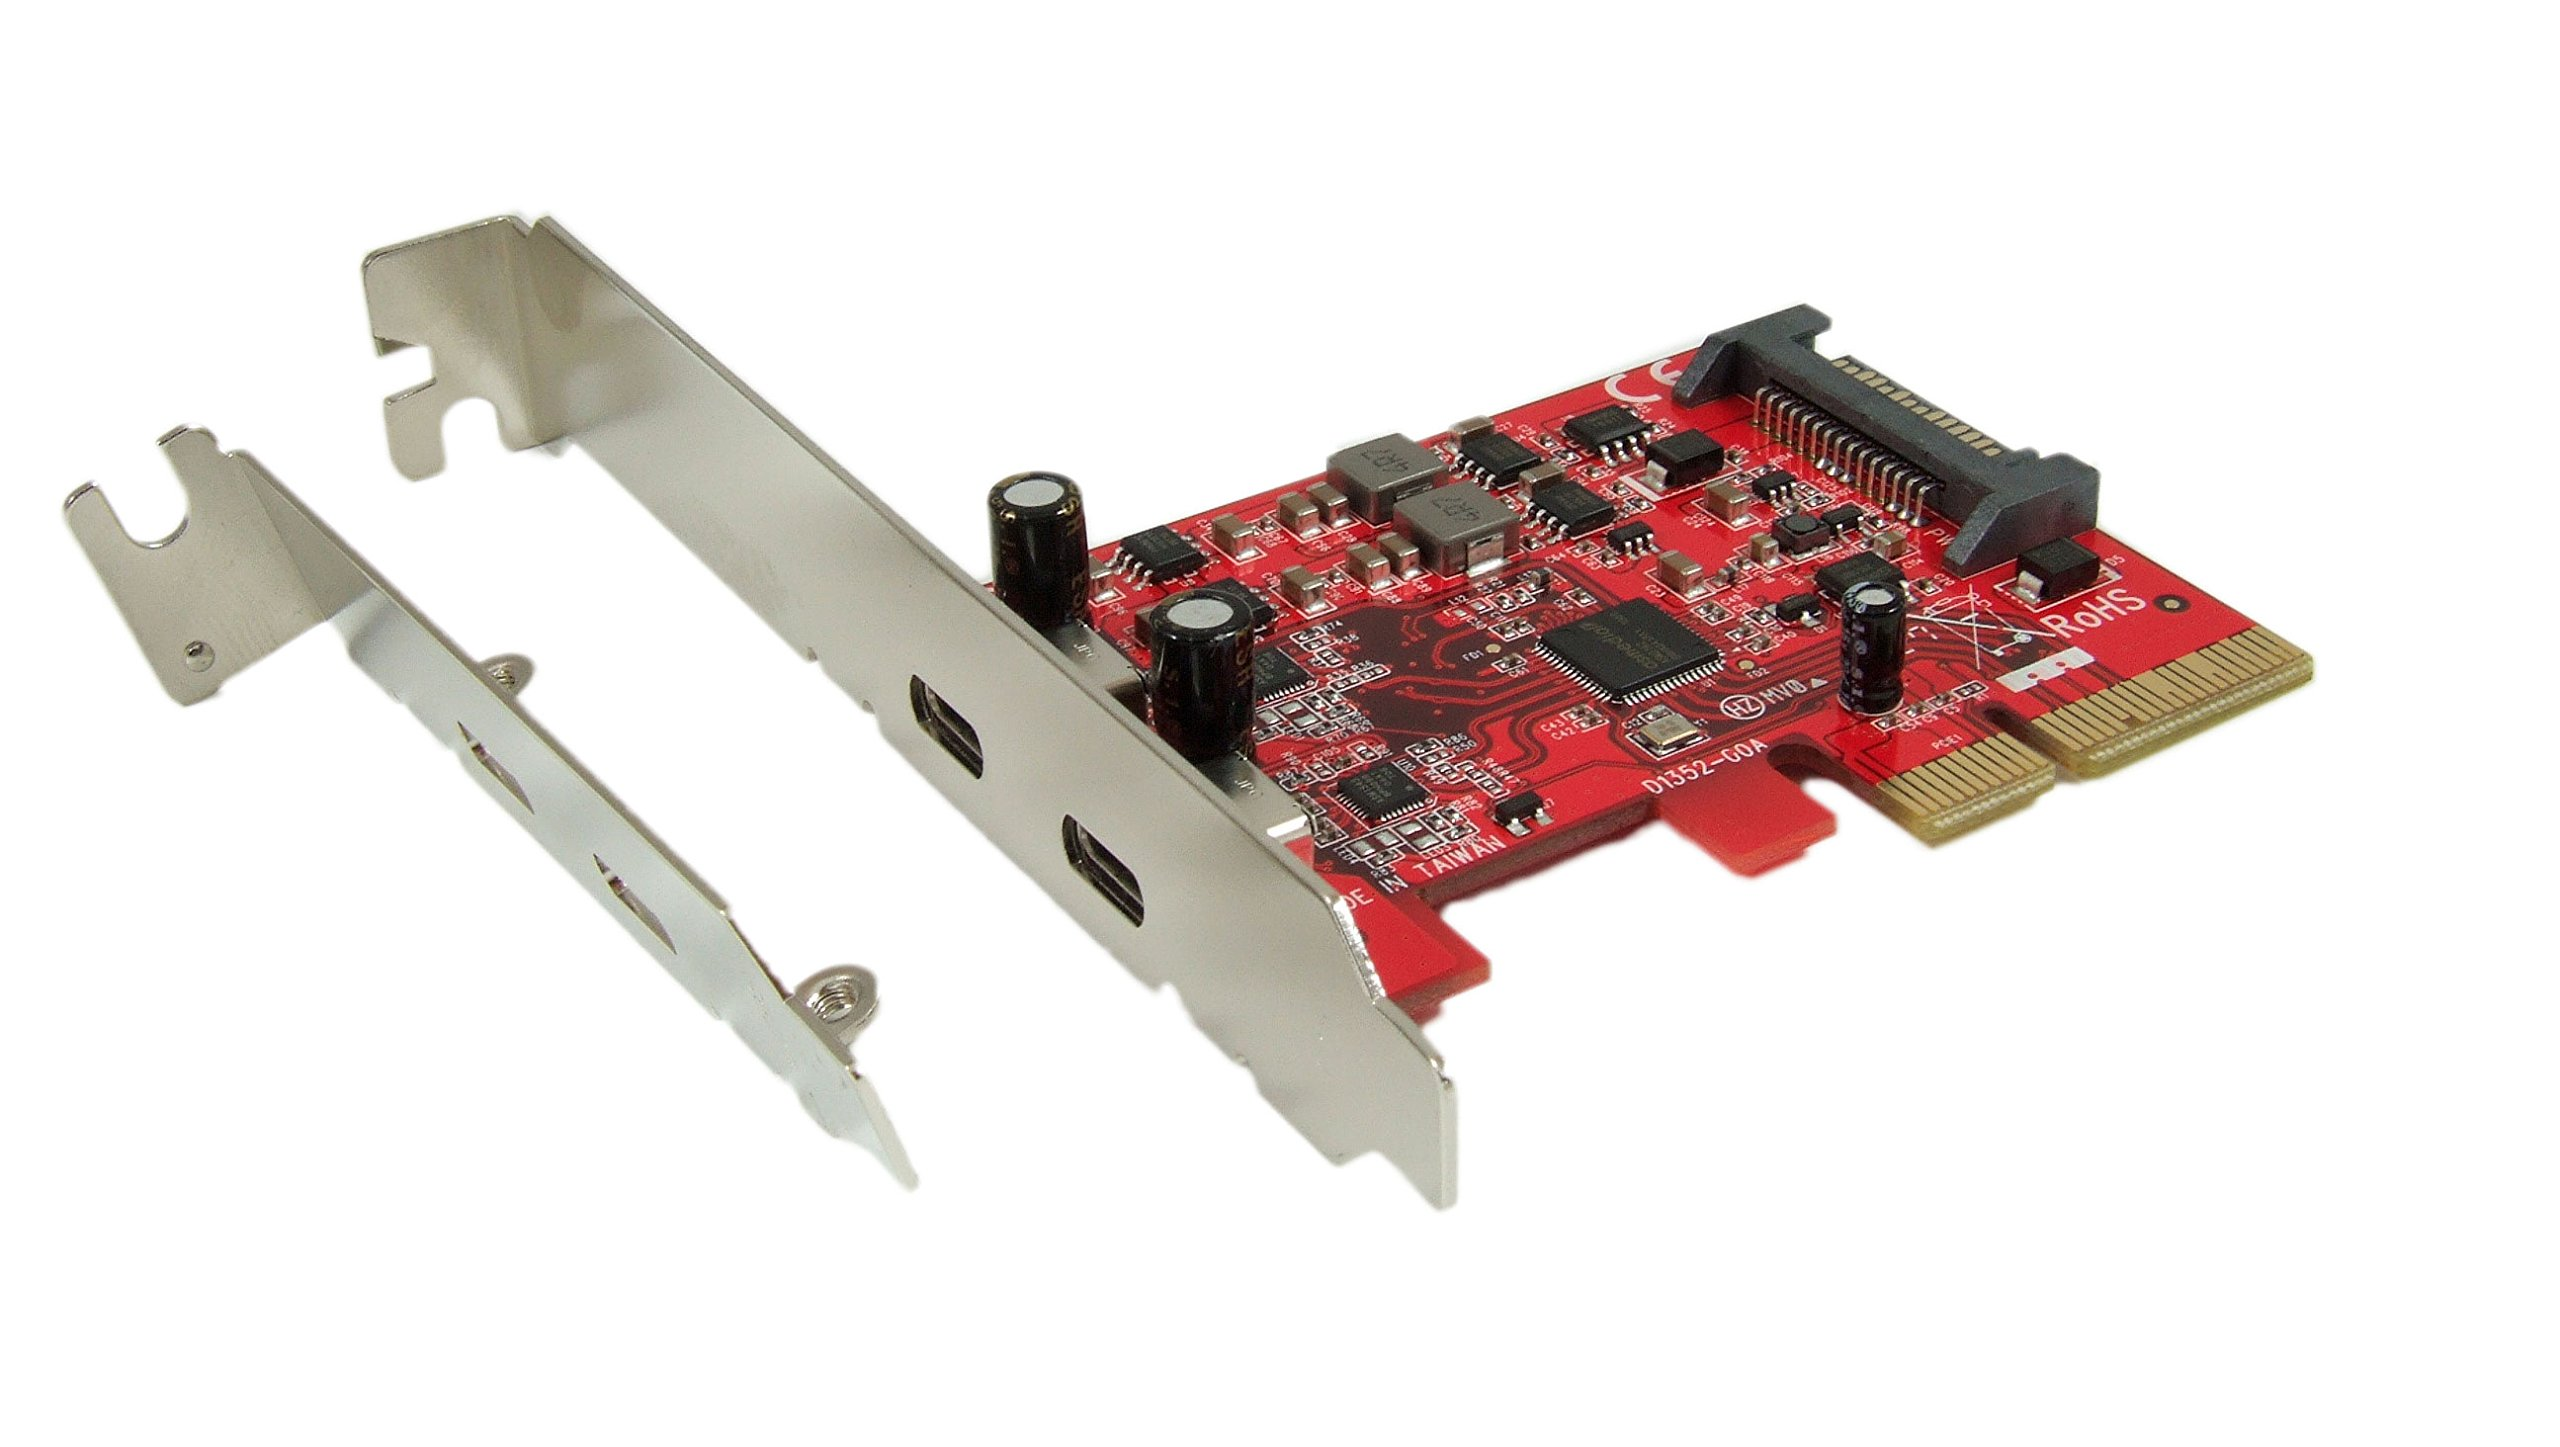 Ableconn PU31-2C-2 USB 3.1 Gen 2 (10 Gbps) 2-Port Type-C PCI Express (PCIe) x4 Host Adapter Card (ASMedia ASM2142 Chipset) - Support MacOS 10.12-10.14 and Windows 10/8